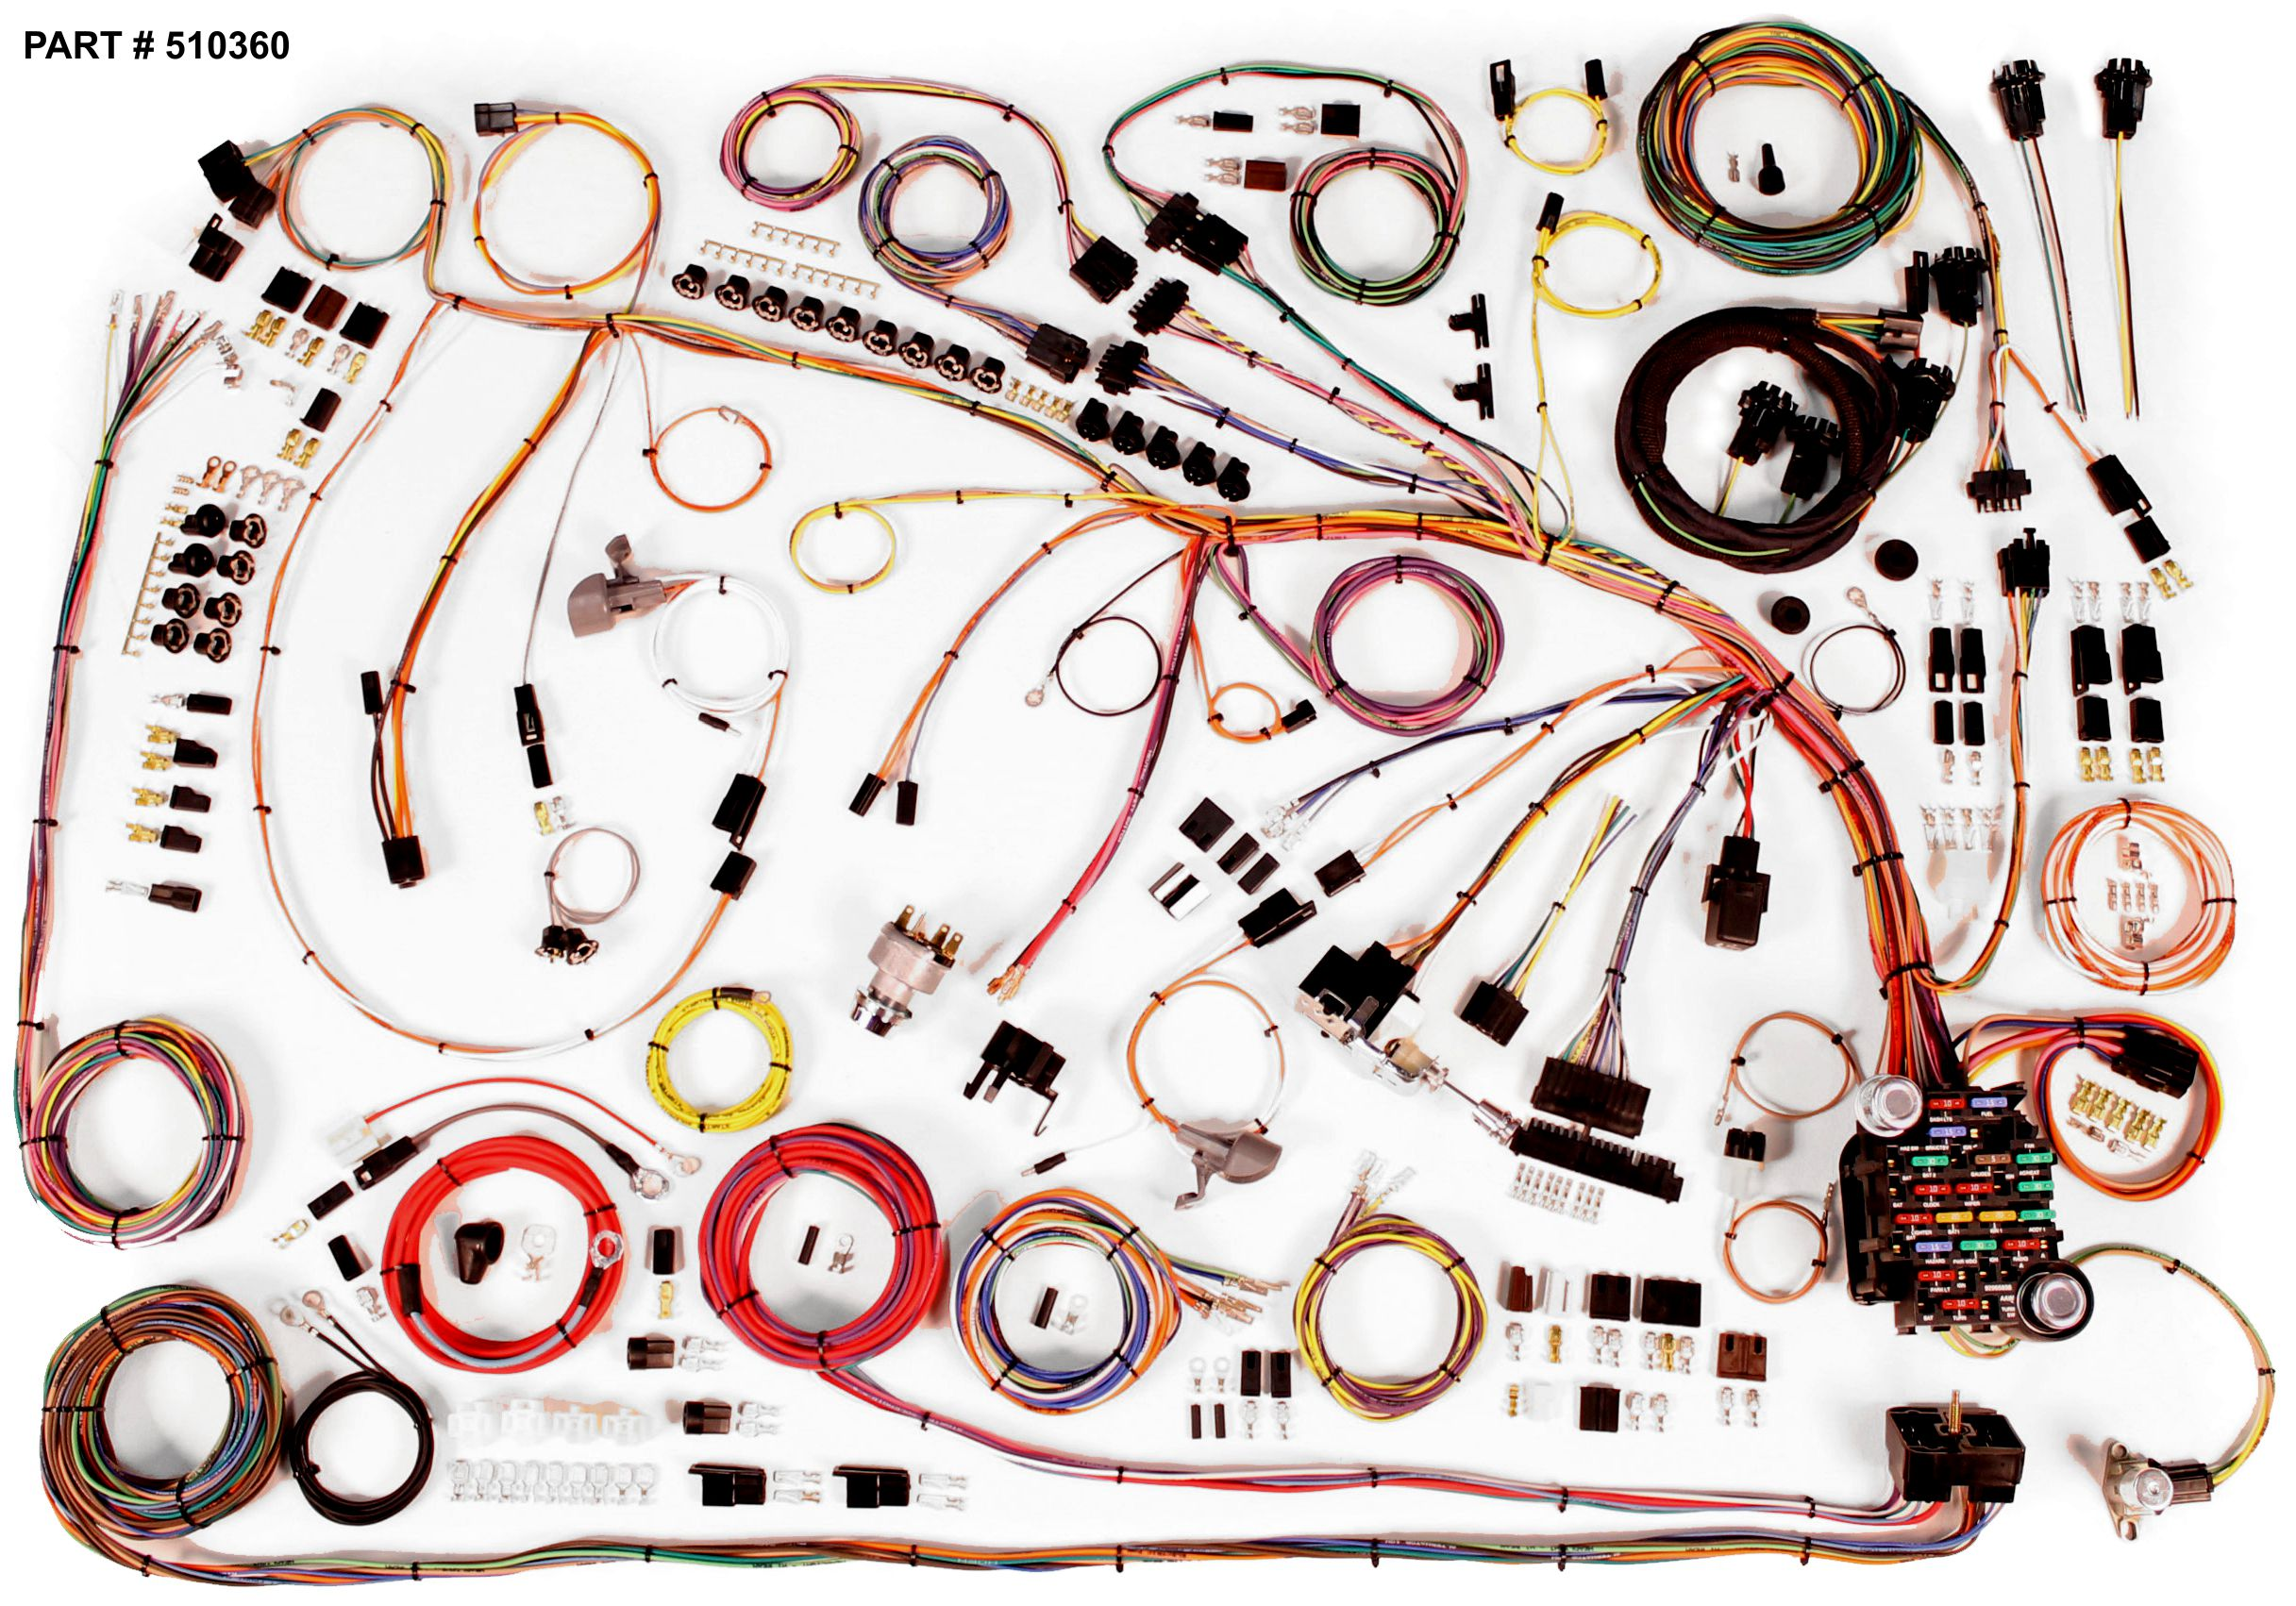 1965_510360 1965 chevrolet impala restomod wiring system 1965 impala wiring harness at eliteediting.co